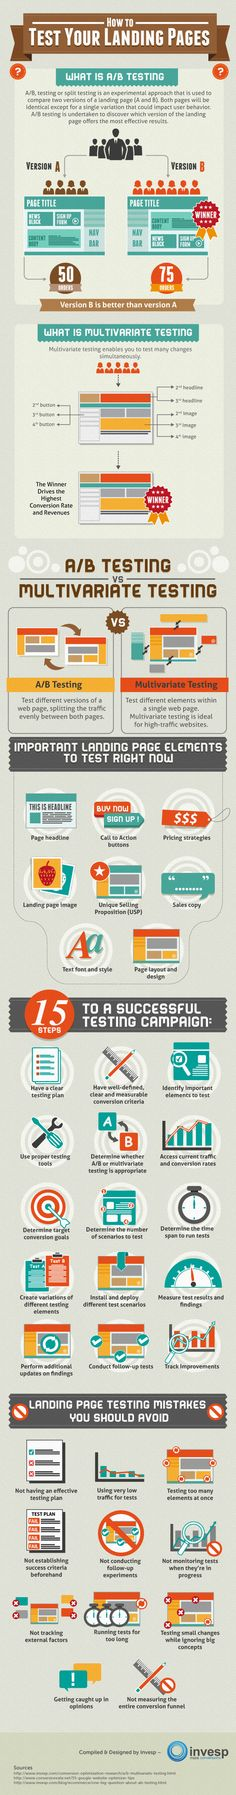 #CRO How to Test Your #LandingPages #PPC #SEO #Infographic